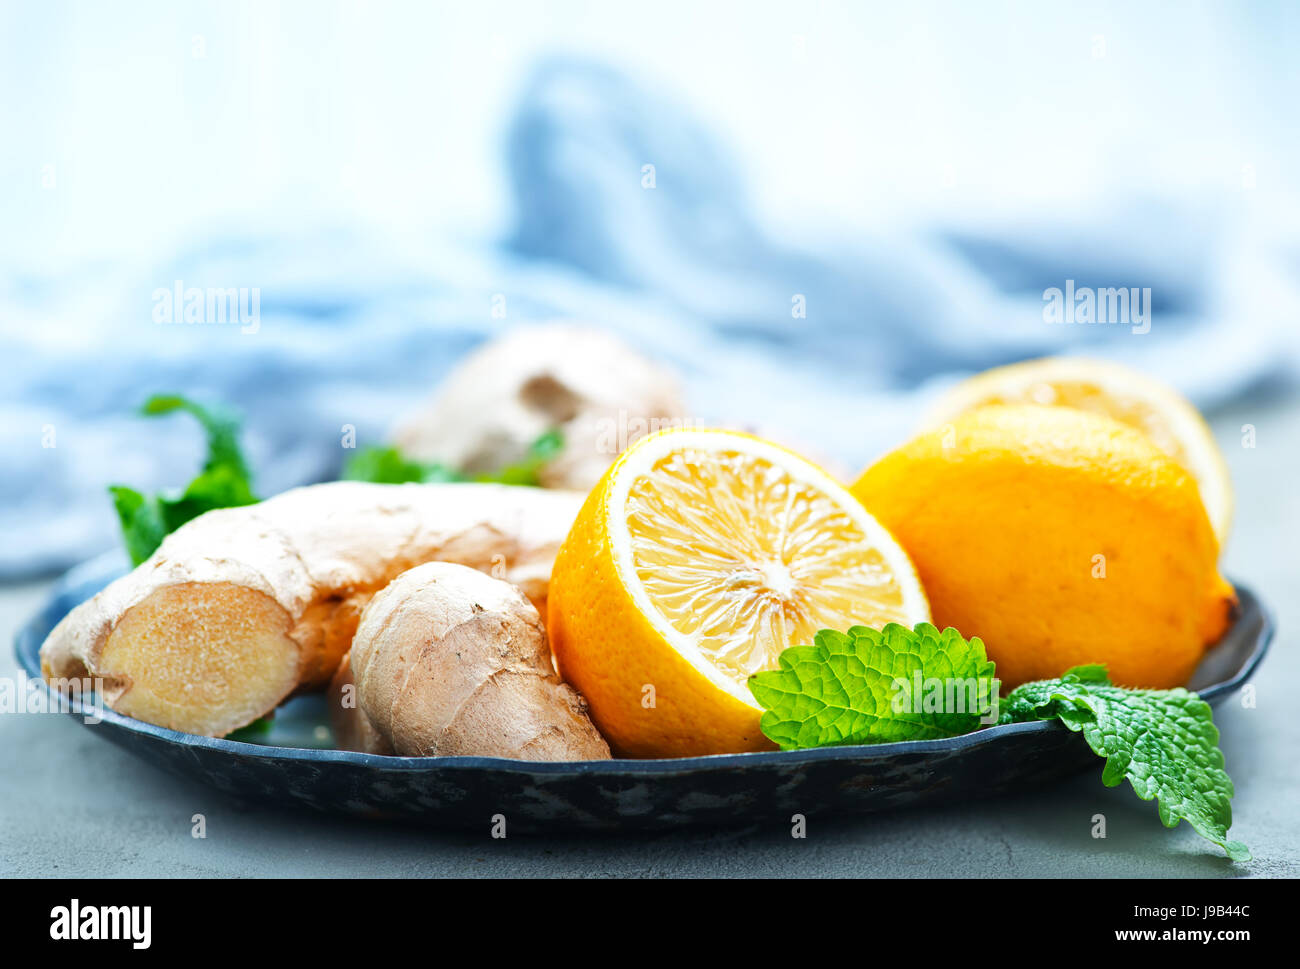 ingredients for tea, fresh products, stock photo - Stock Image